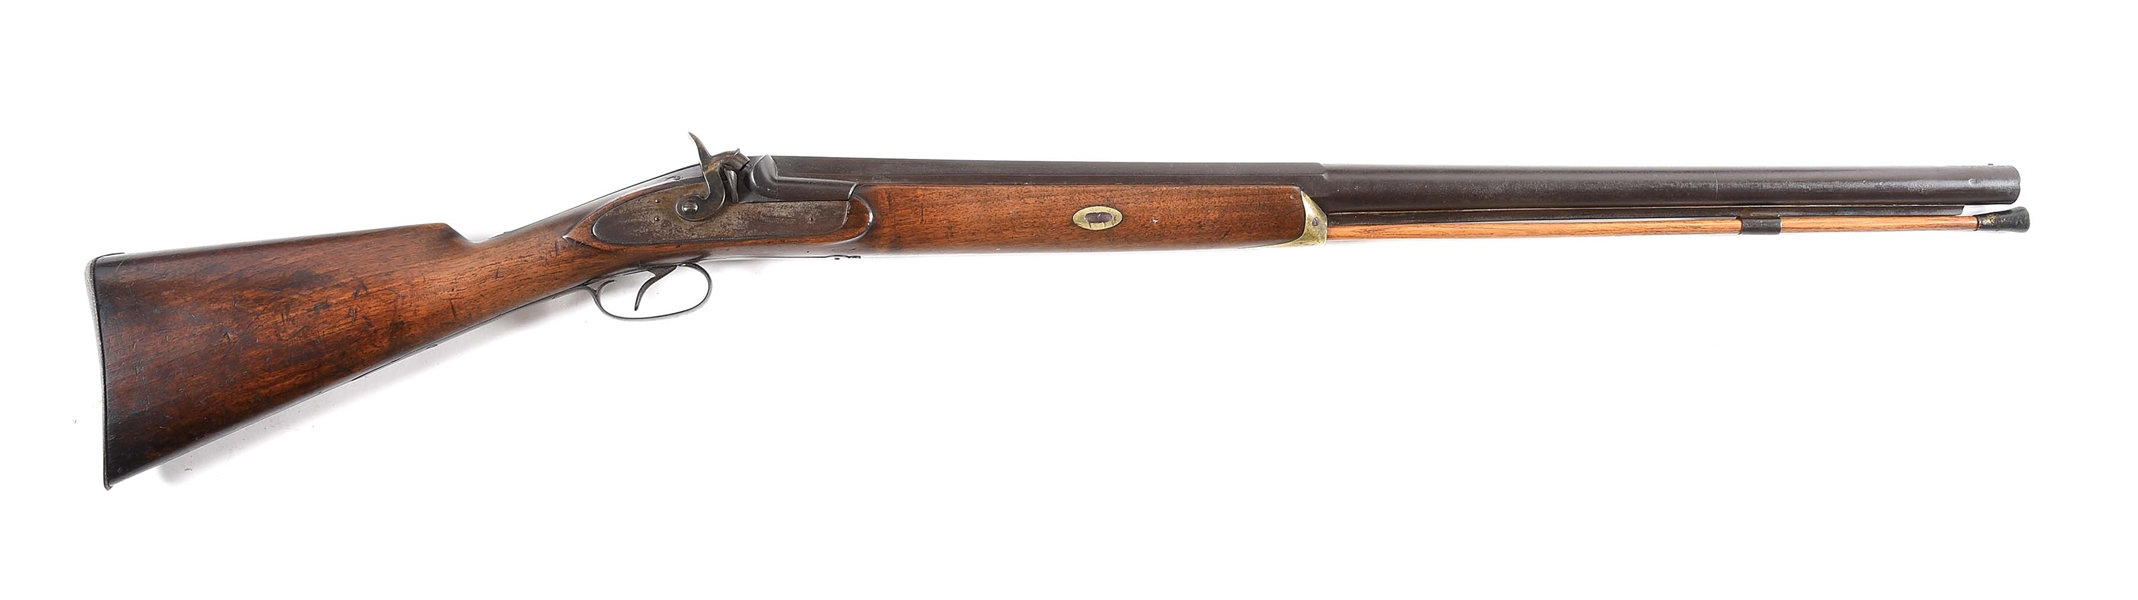 (A) J DONN FOWLER PERCUSSION SHOTGUN.